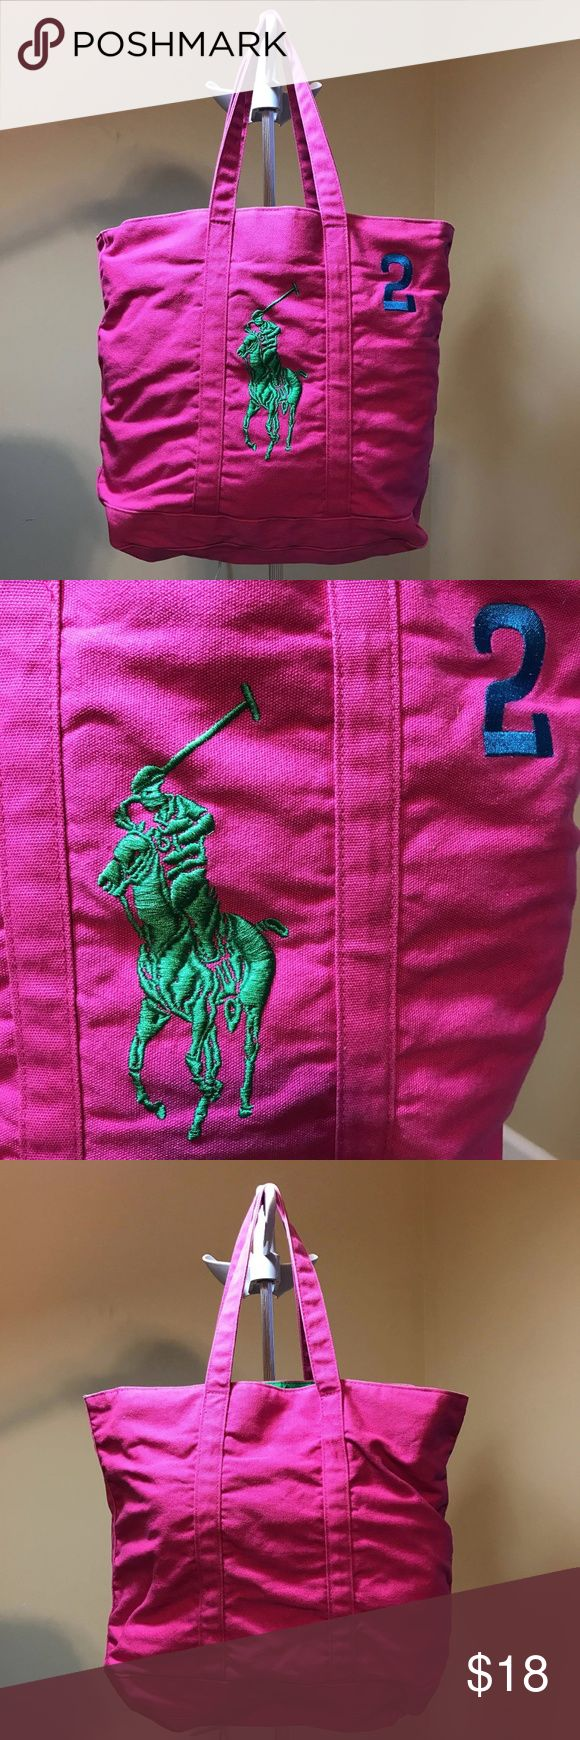 SALE!RALPH LAUREN BIG PONY PINK TOTE BAG CANVAS PRE-OWNED IN A VERY GOOD CONDITION  FOR $18.00 ONLY  Don't miss this opportunity to have this bag while on mega sale!  THANK YOU FOR SHOPPING WITH US AND PLEASE MAKE SURE TO CHECK OUR STORE FOR MORE TOP QUALITY PRODUCTS YOU WILL LOVE!   THIS IS GUARANTEED BRAND NEW 100% AUTHENTIC MERCHANDISE   ITEMS ARE STORED IN AN AIRCONDITIONED CLOSET THAT IS SMOKE FREE AND PET FREE. Ralph Lauren Bags Totes